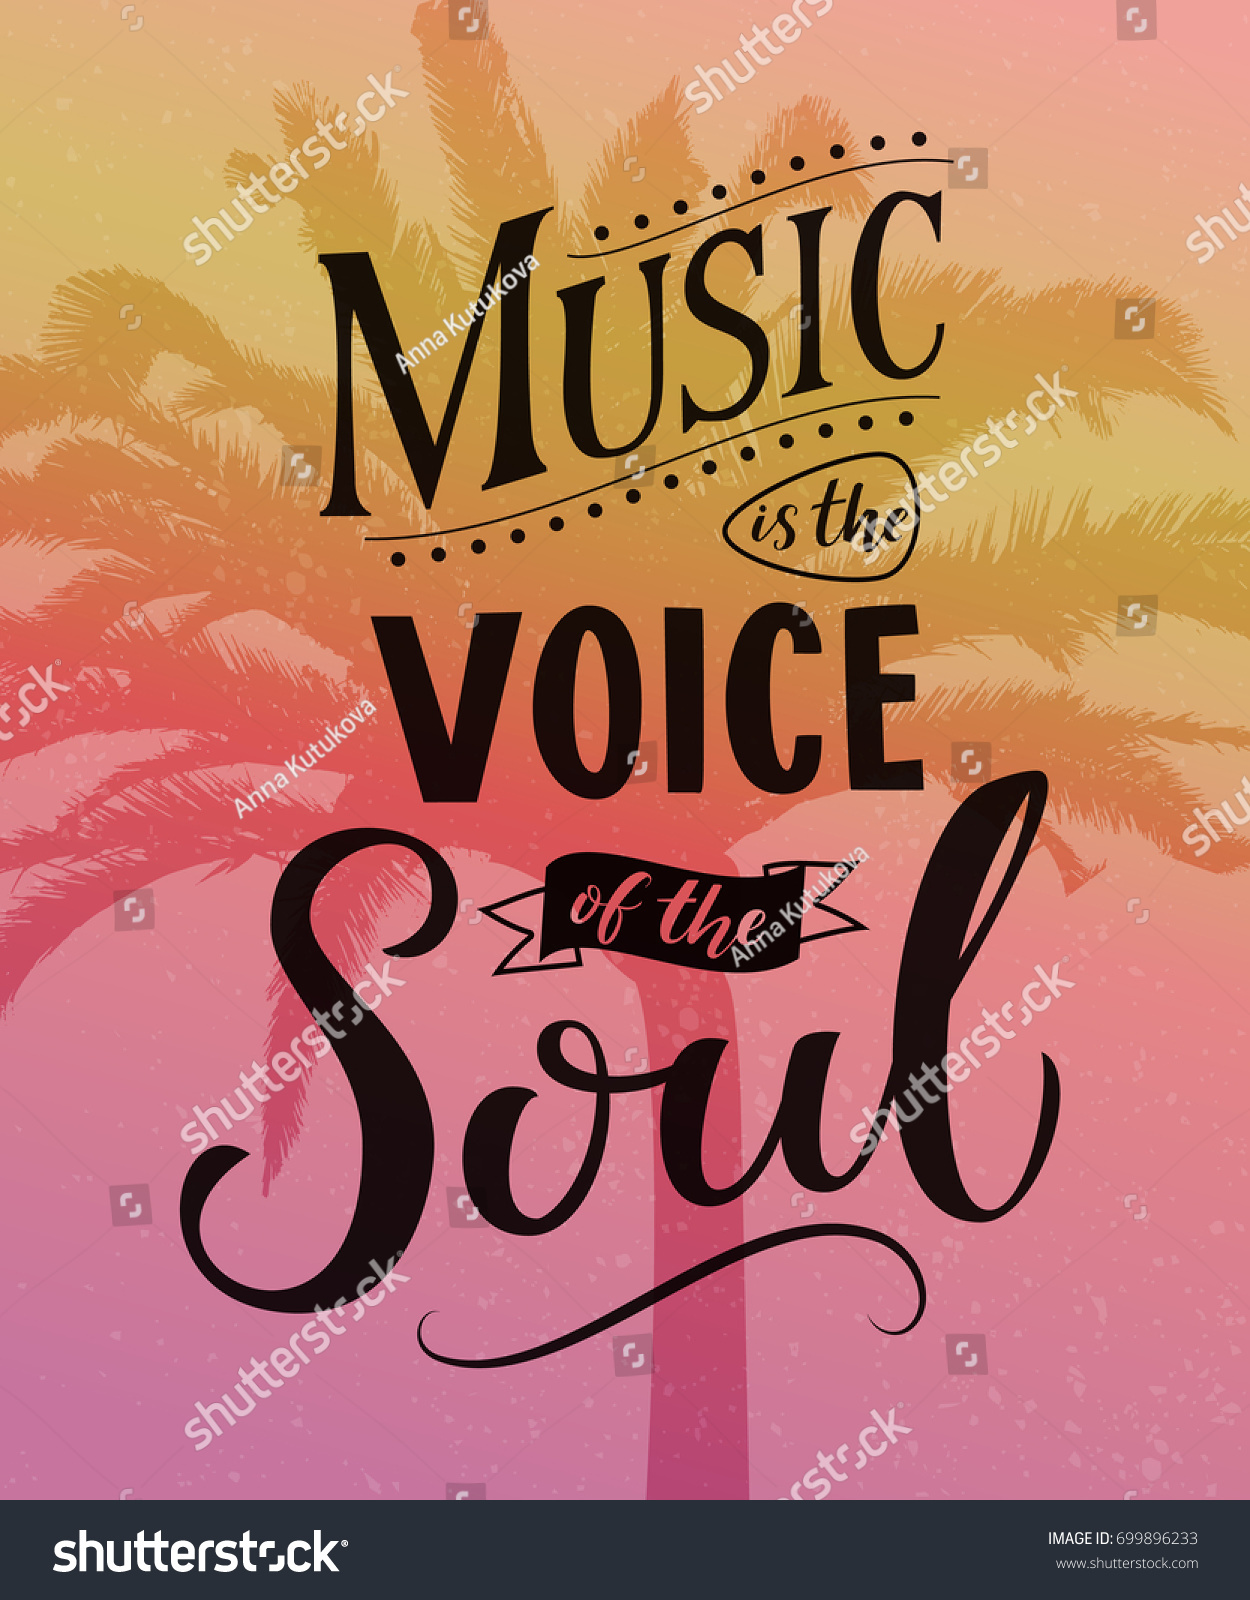 Music Voice Soul Inspirational Quote Typography Stock Vector